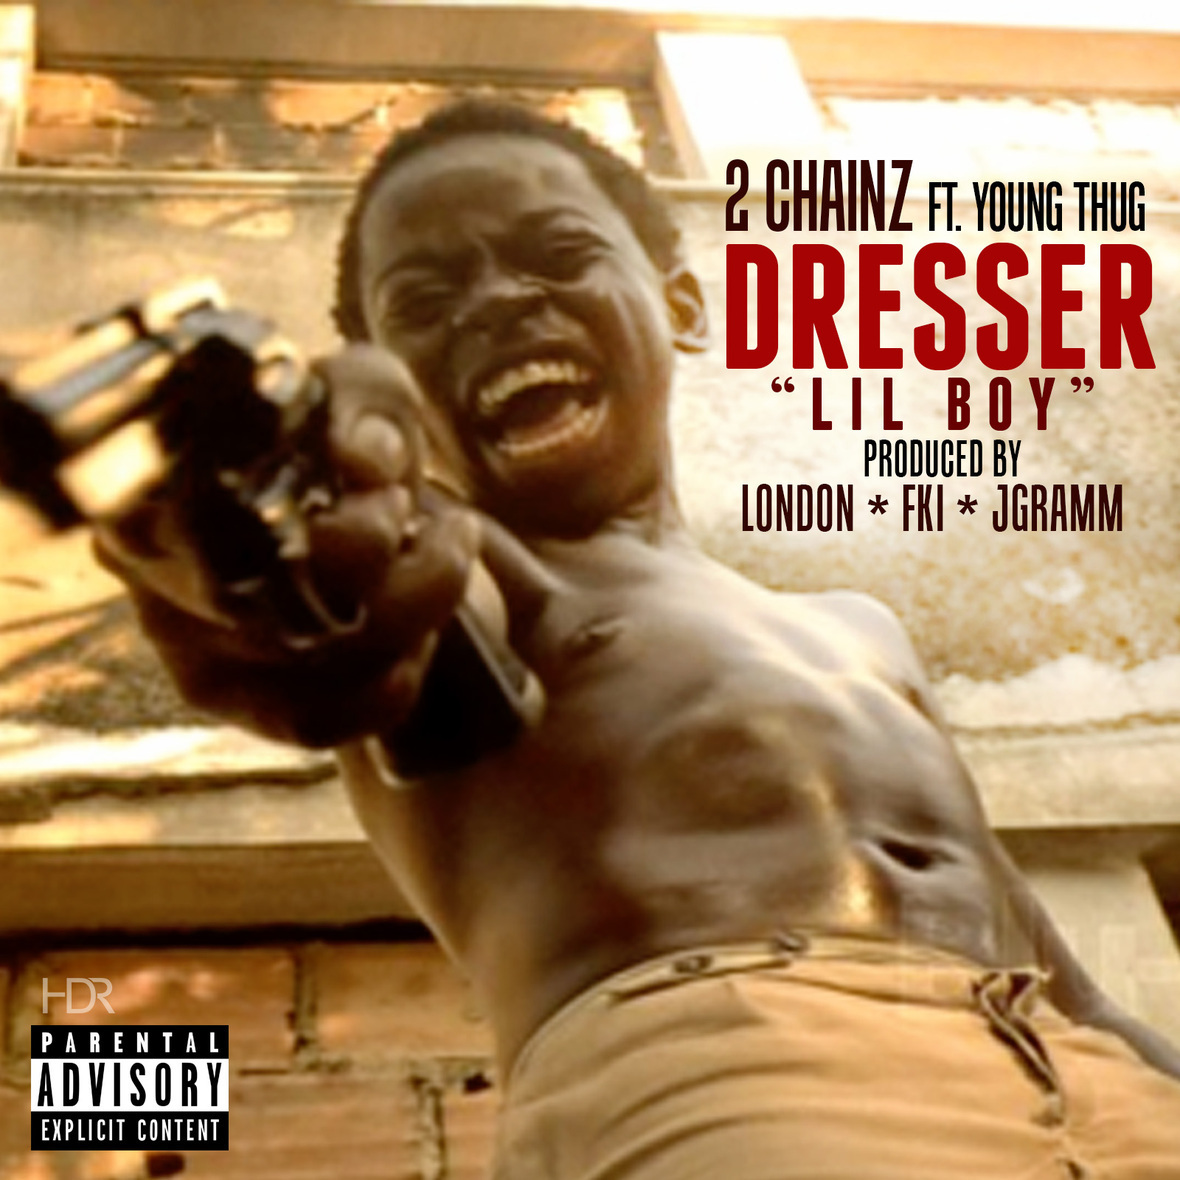 2 Chainz ft Young Thug - Dresser Lil Boy artwork